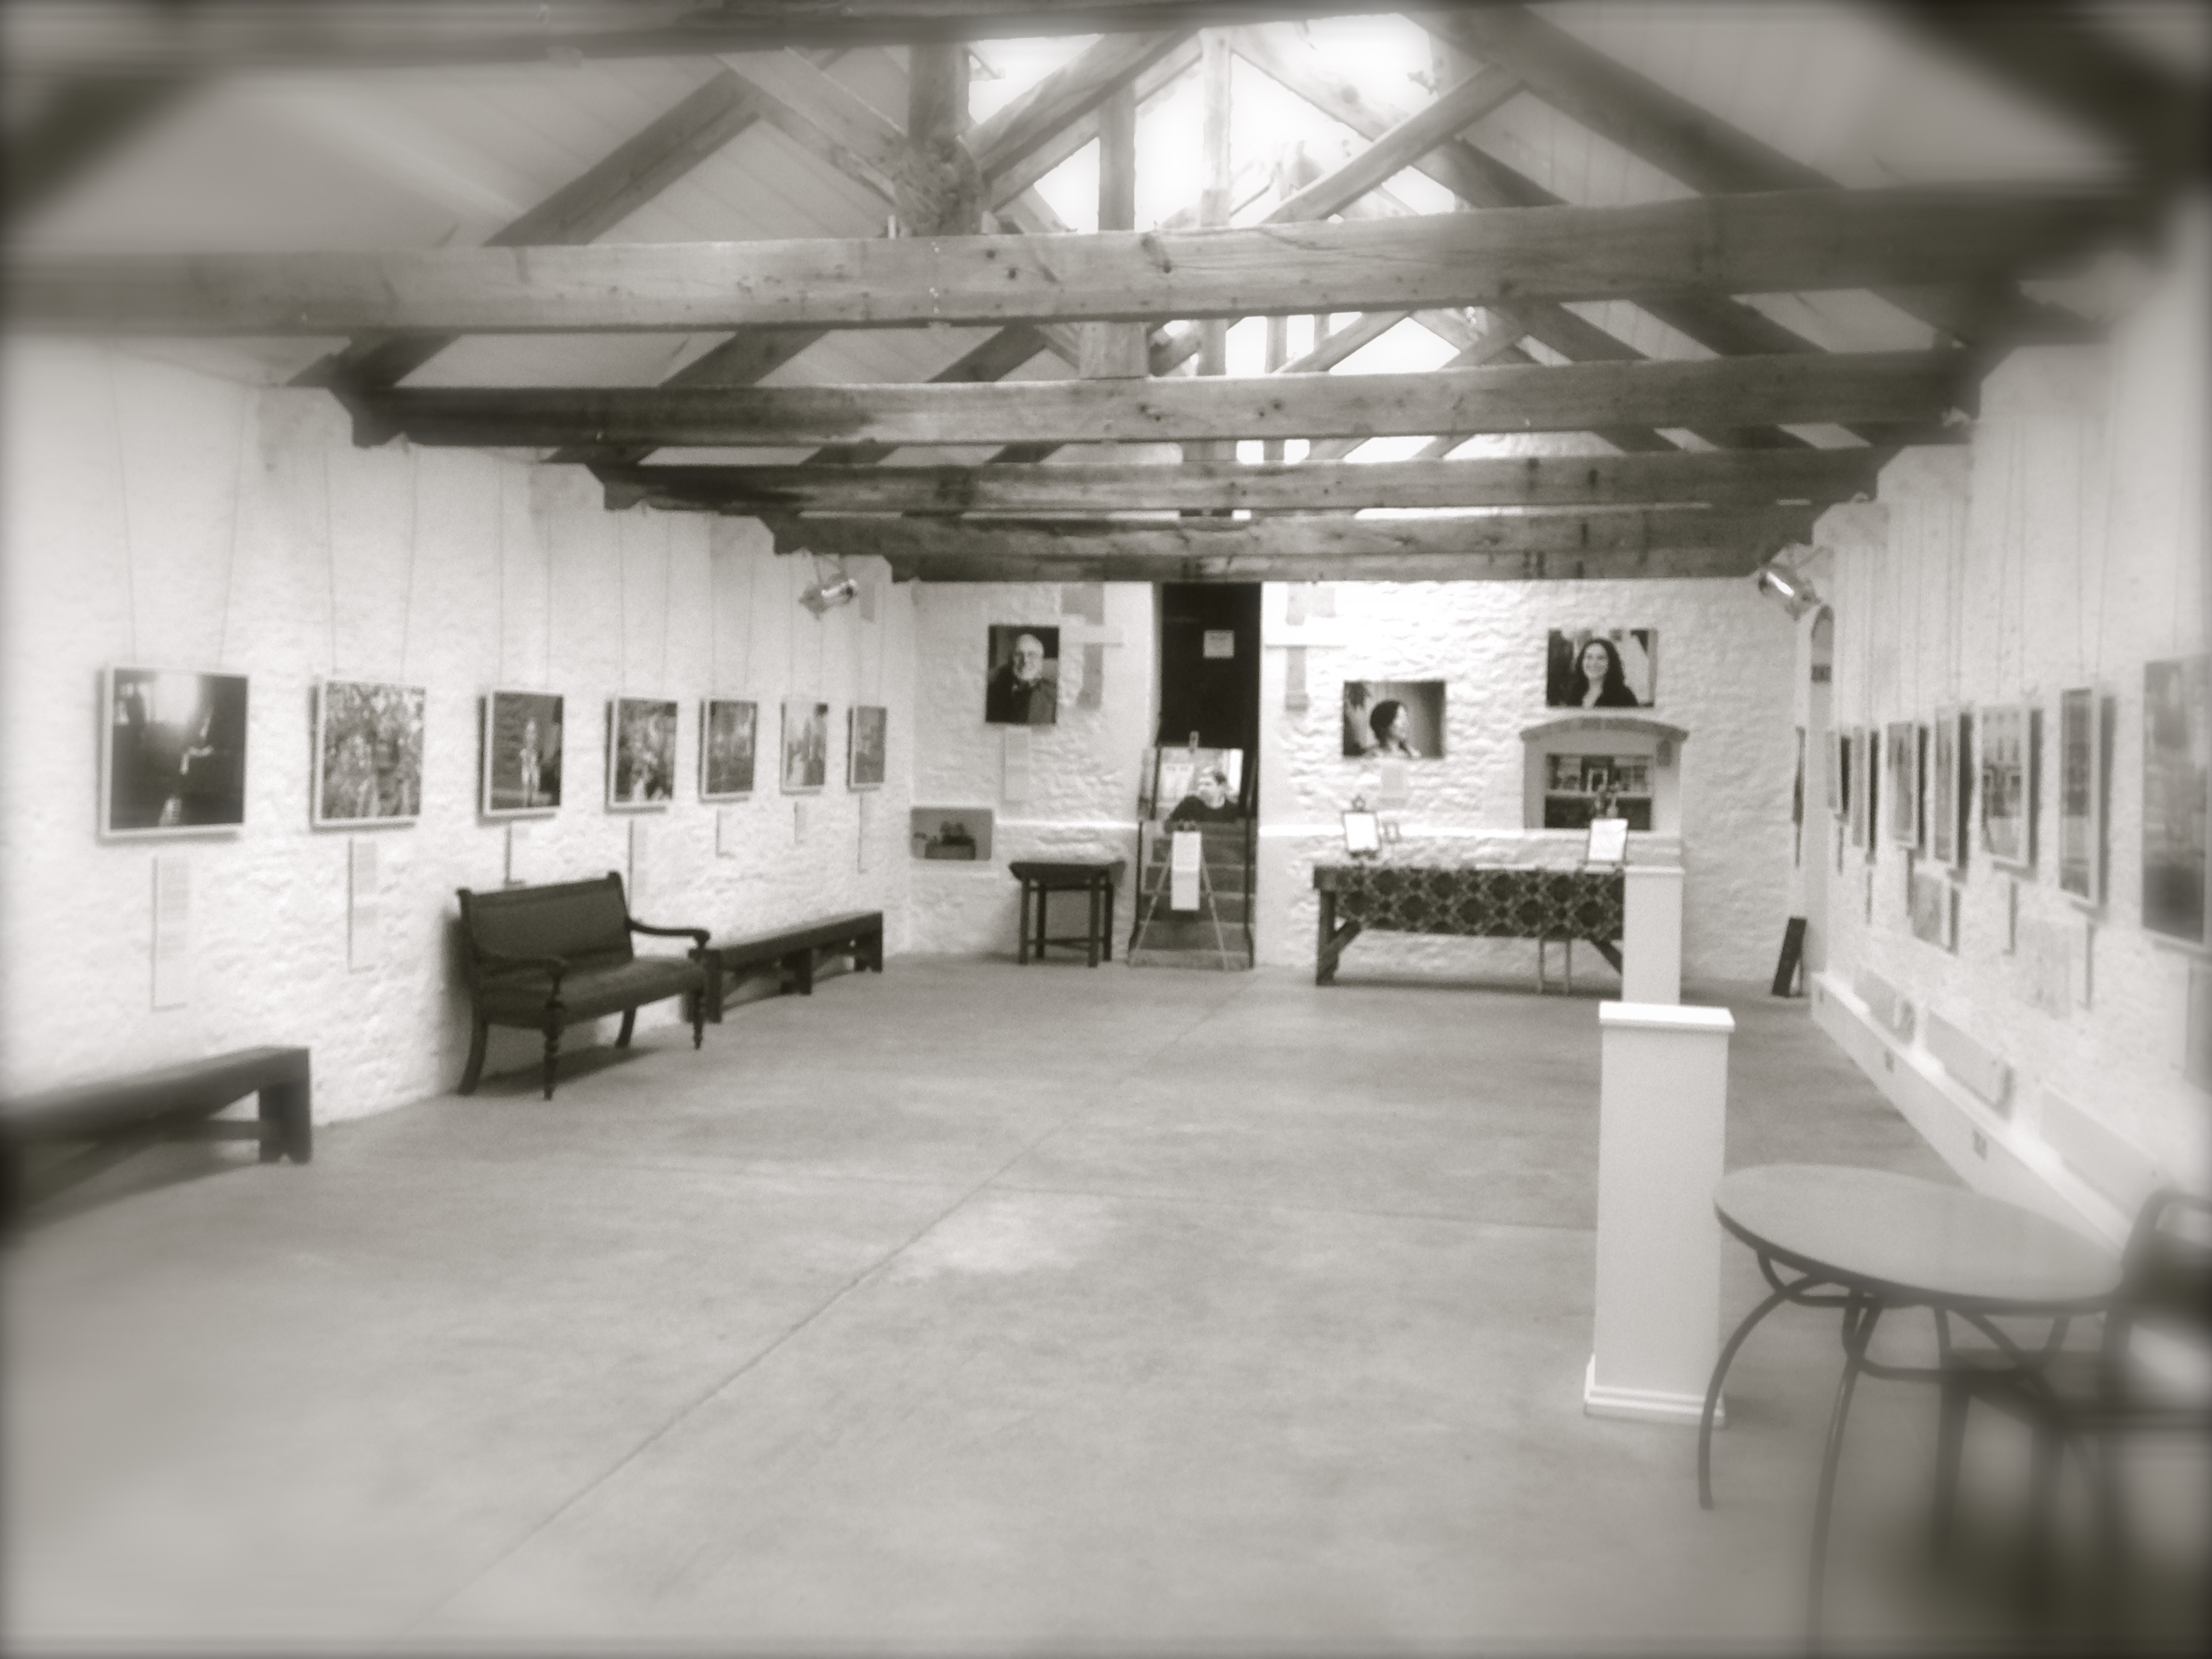 Gallery with Humans of Frome show